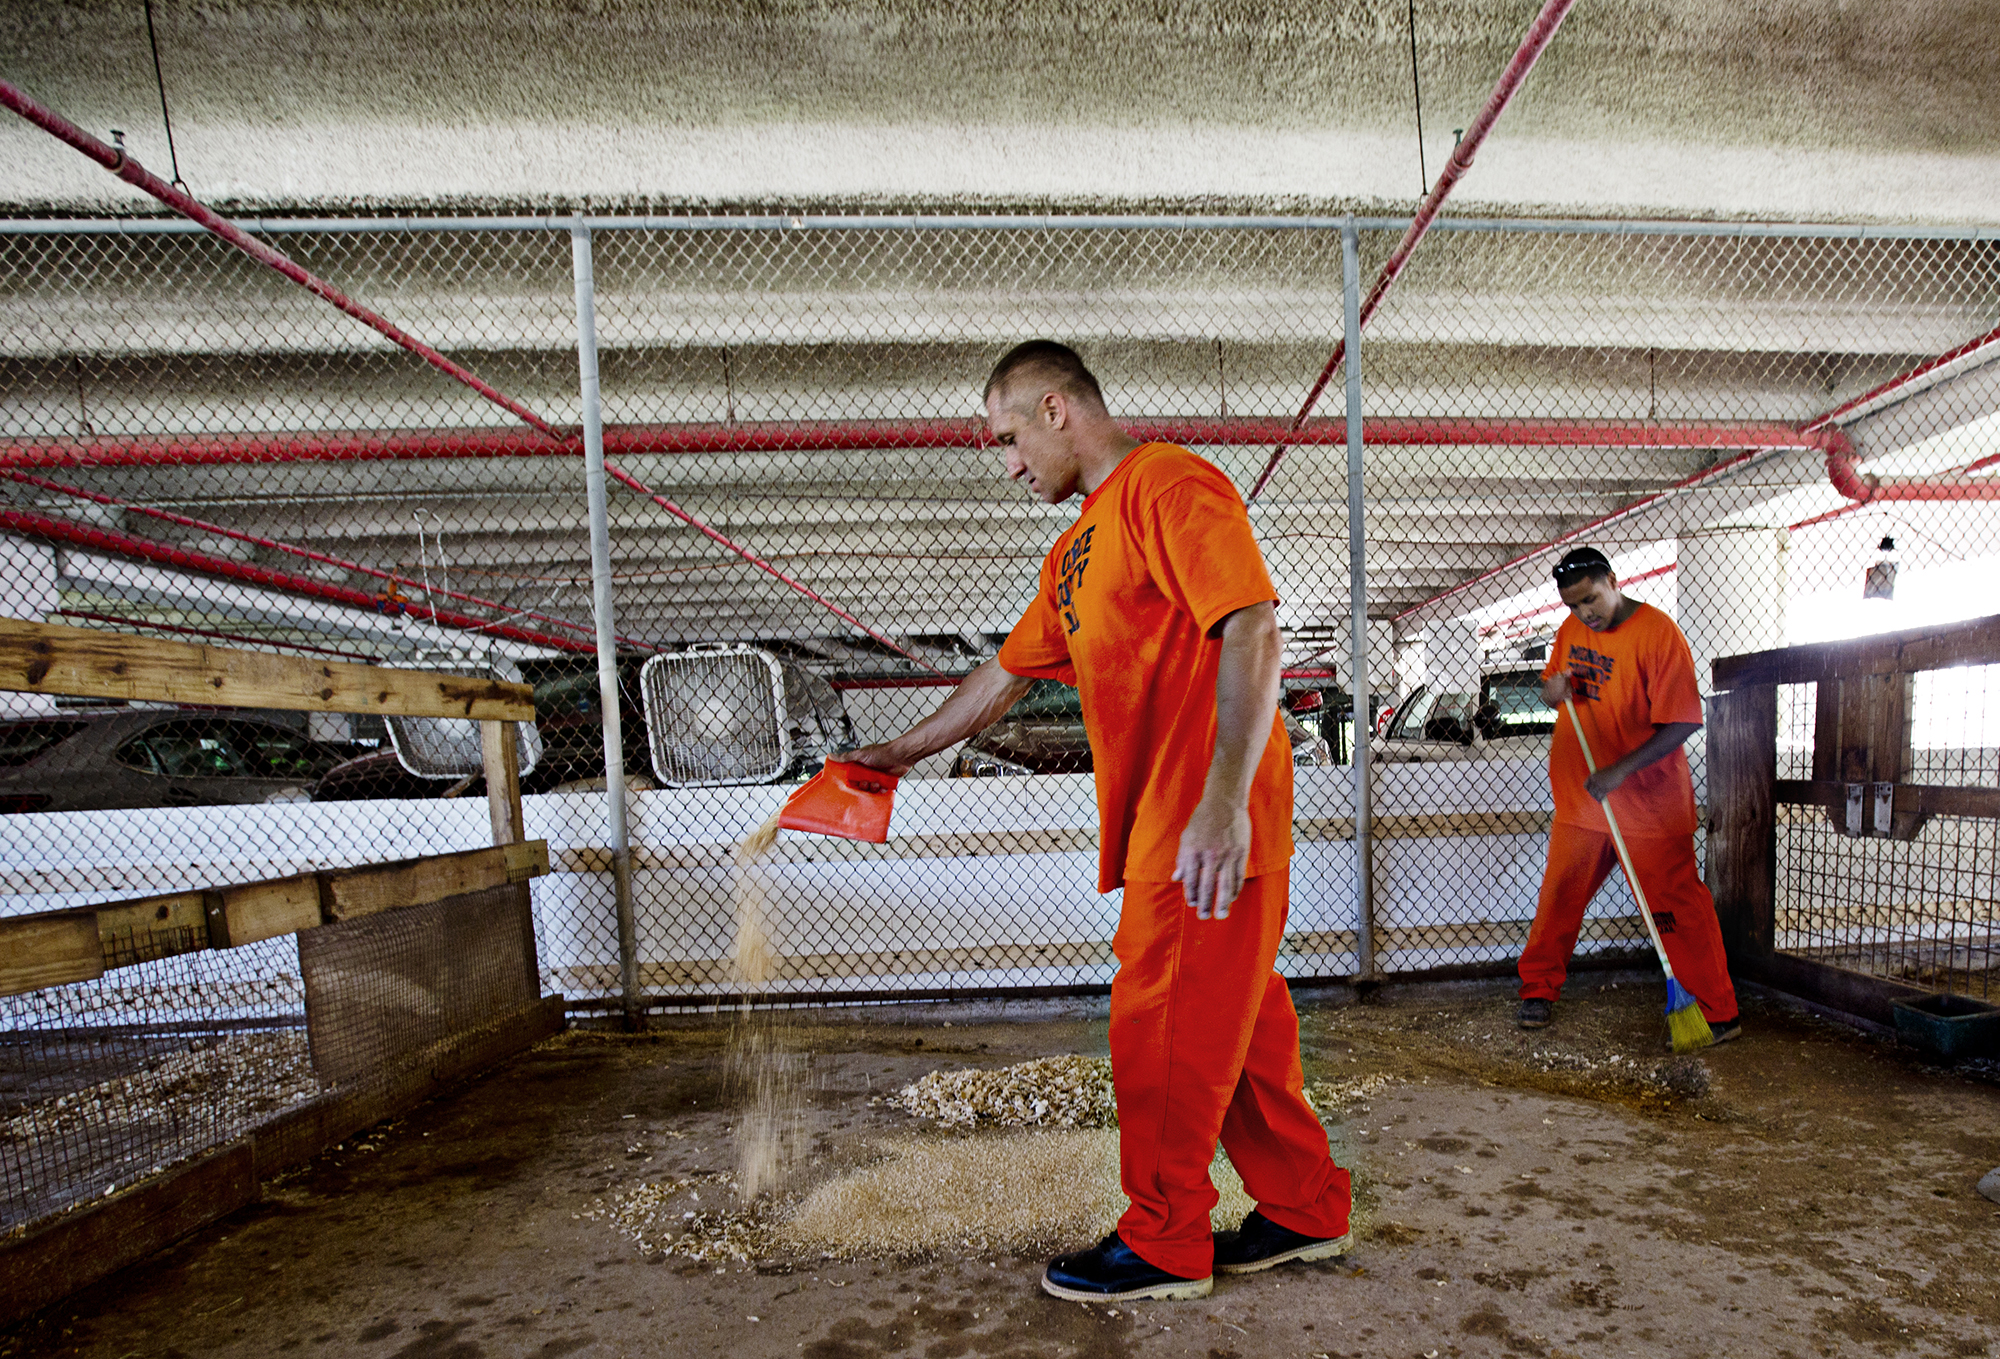 Inmates Orlando Gonzalez and Michael Smith clean out animal pens at the Monroe County Sheriff's Office Animal Farm that is located on the grounds of the detention center. Photo by Kim Raff